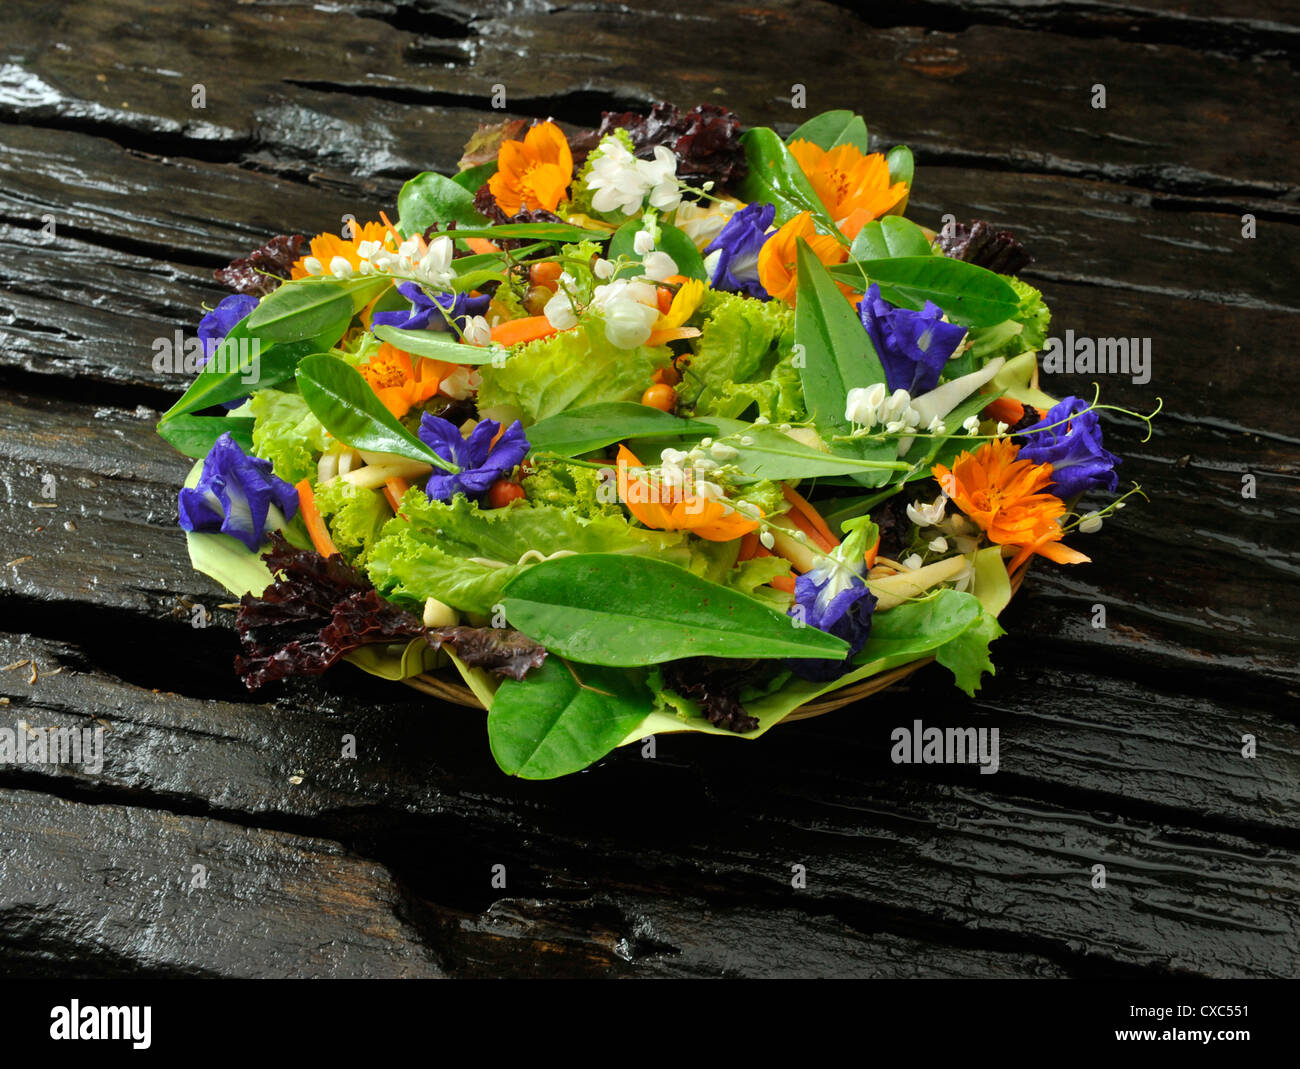 Fresh salad with edible flowers, Philippines, Southeast Asia, Asia - Stock Image